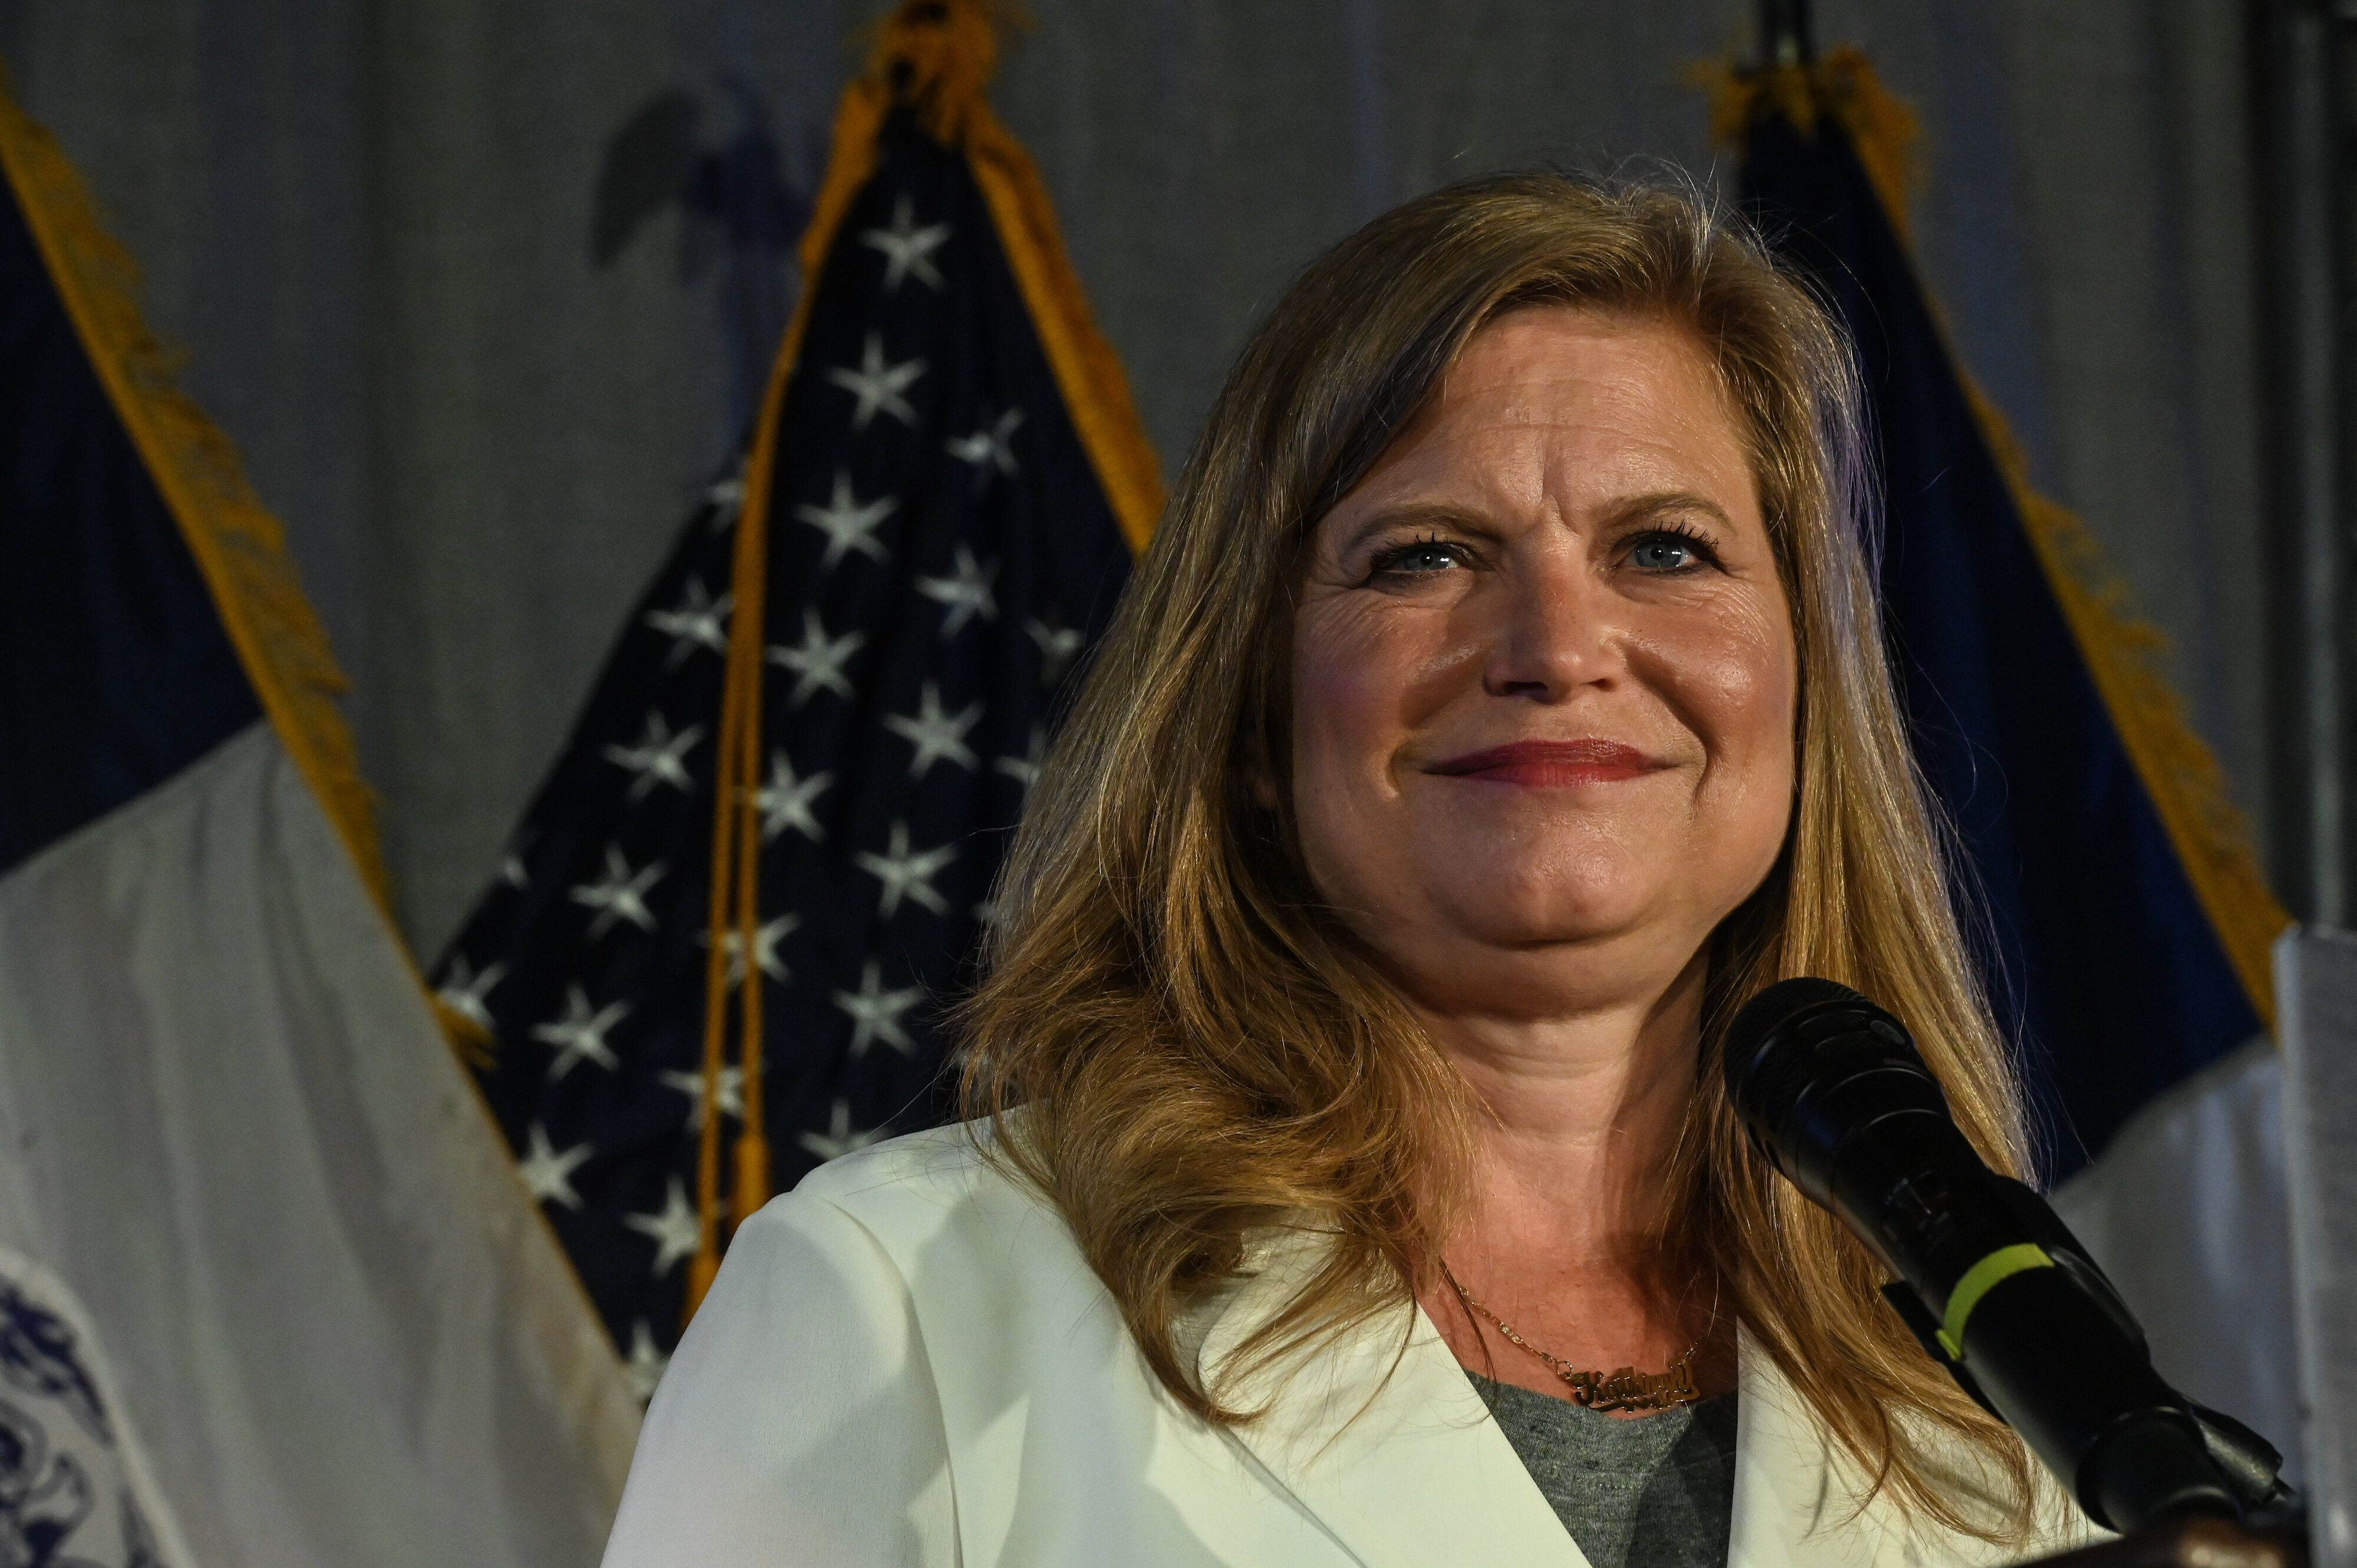 Kathryn Garcia, a moderate technocrat, is within striking distance of Eric Adams, according to a new, unofficial tally of in-